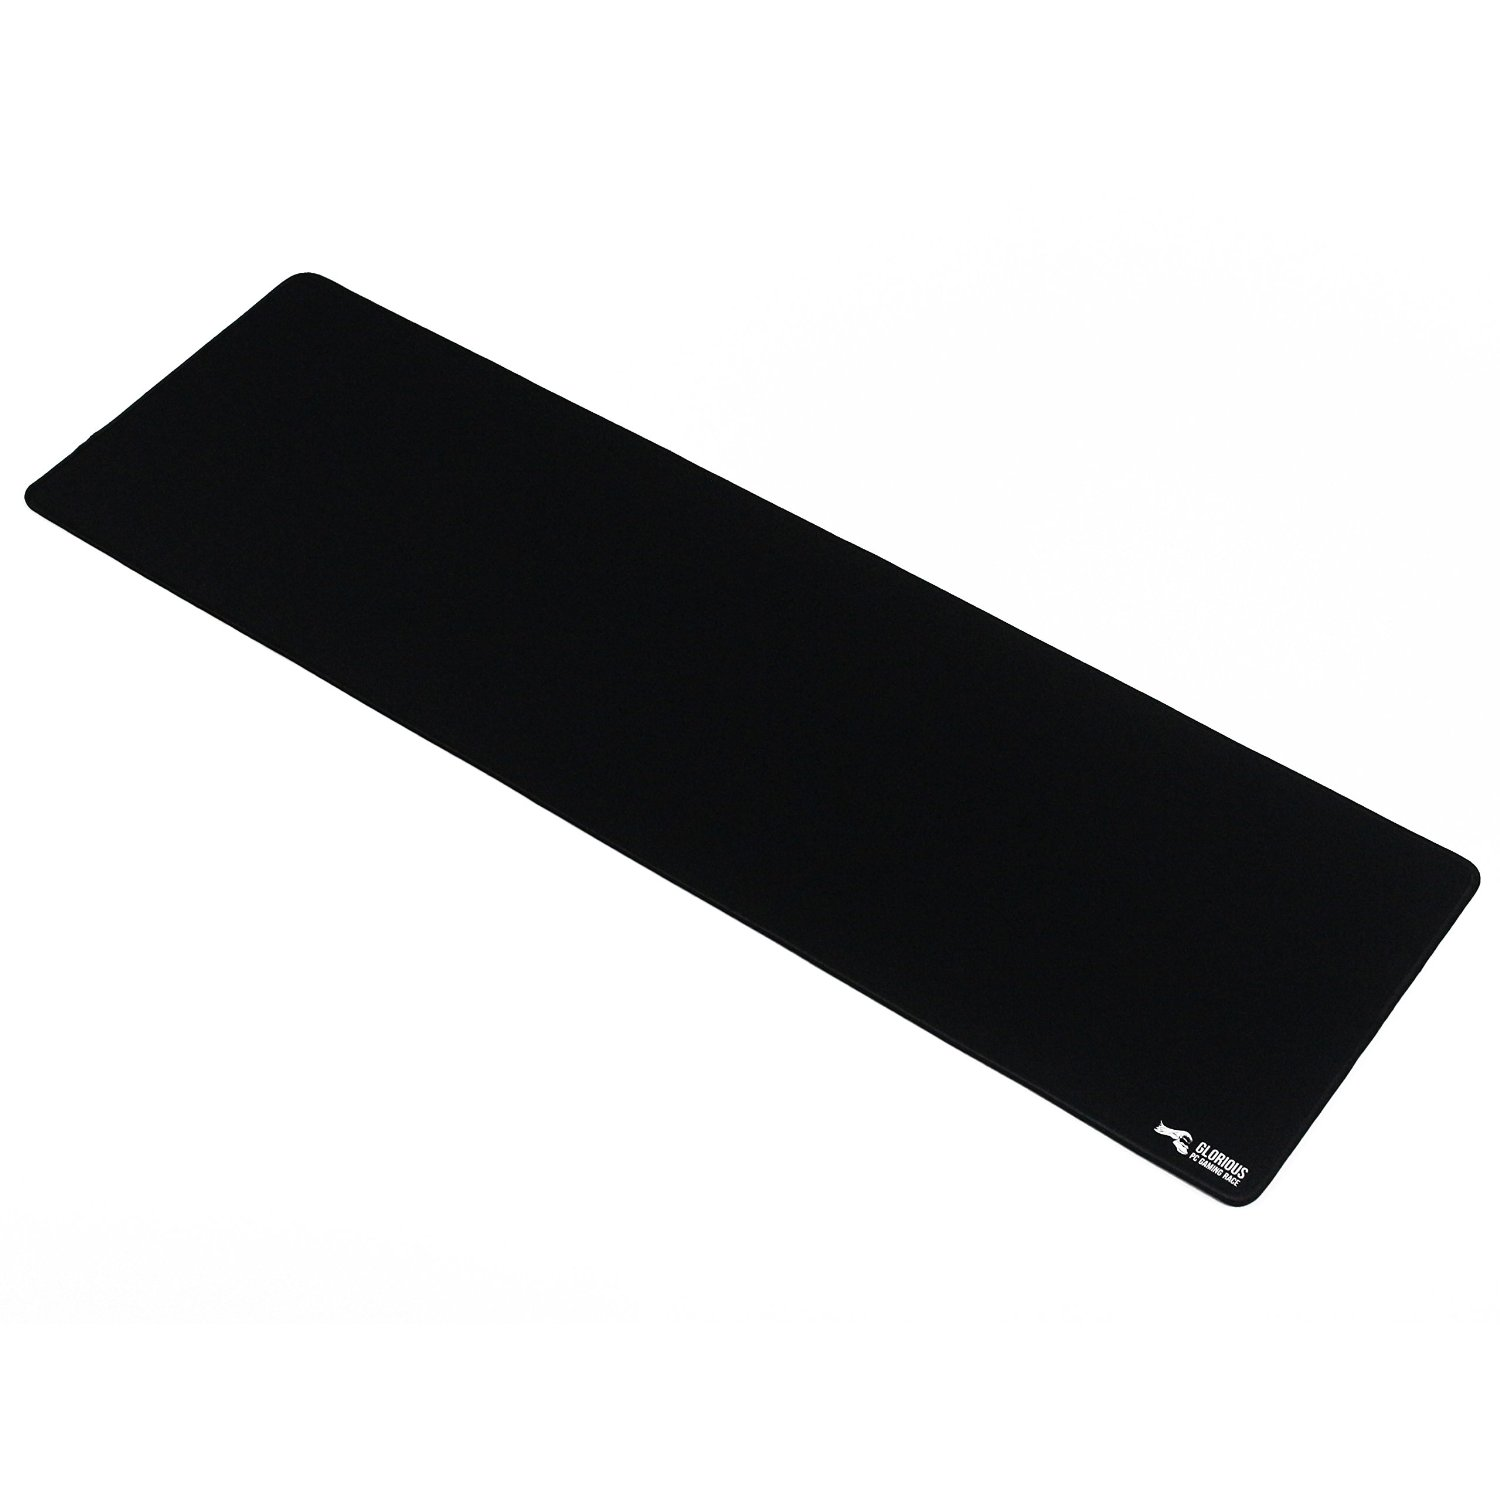 861a589314e Glorious Gaming Mouse Pad / Mouse Mats (L, XL, Extended, XXL, 3XL) (Black  and White) - Walmart.com